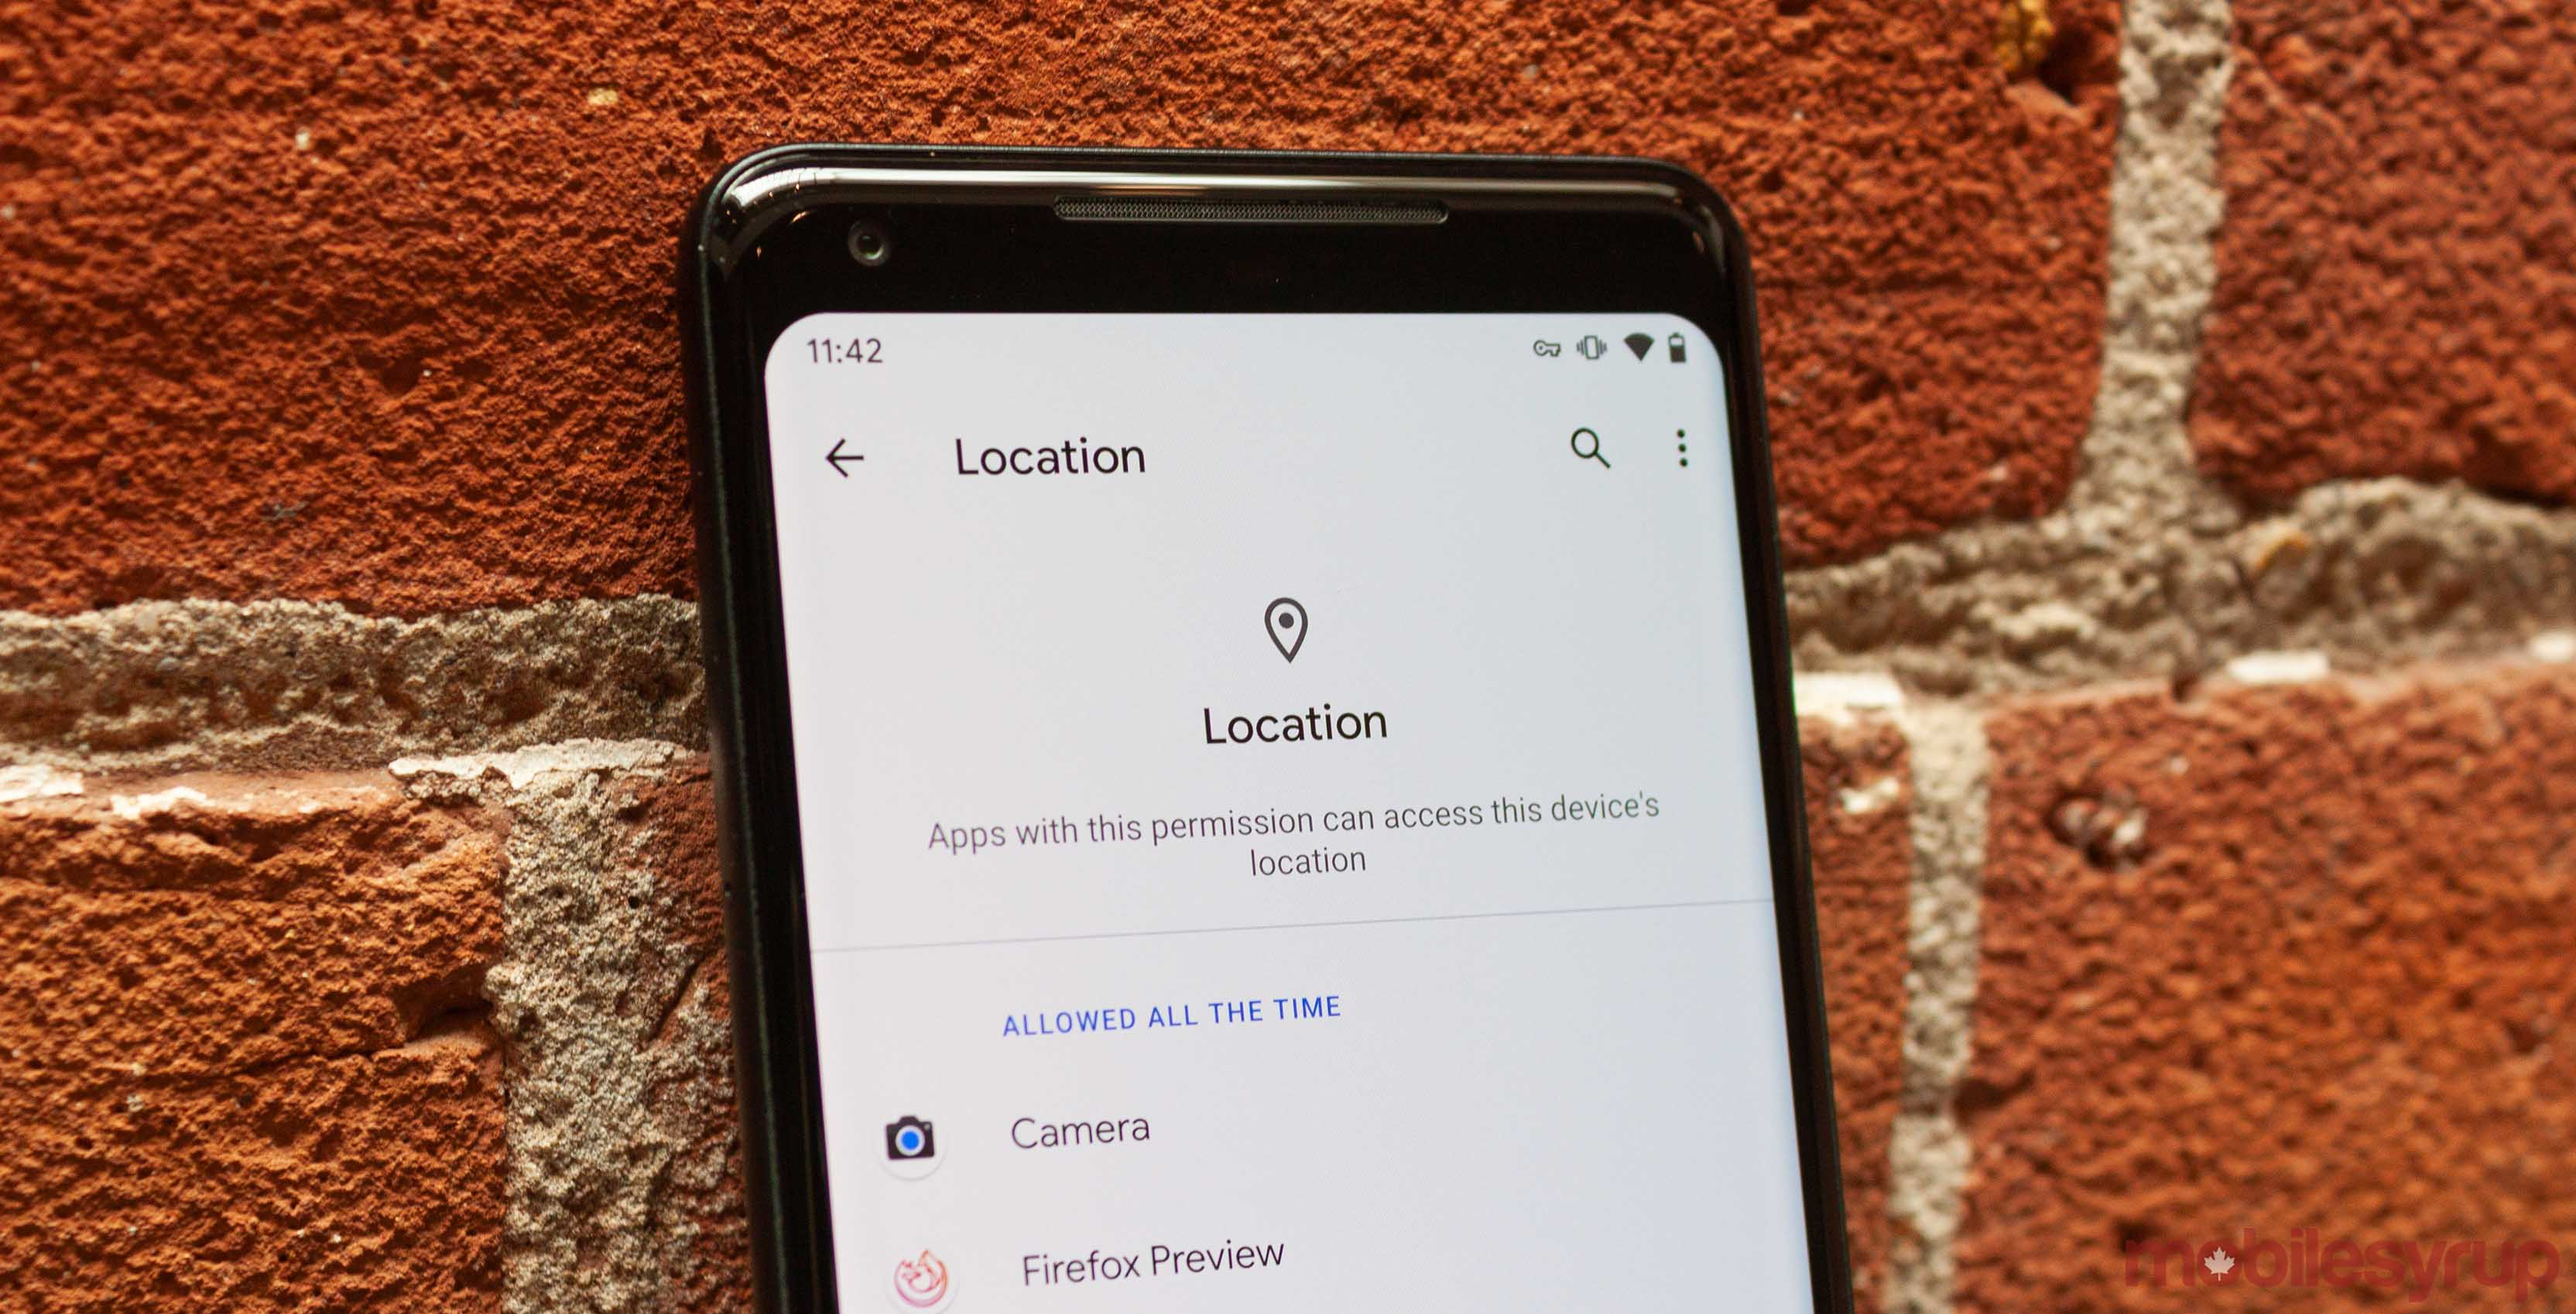 Android Q Beta 5 grants every app full location access to prep for